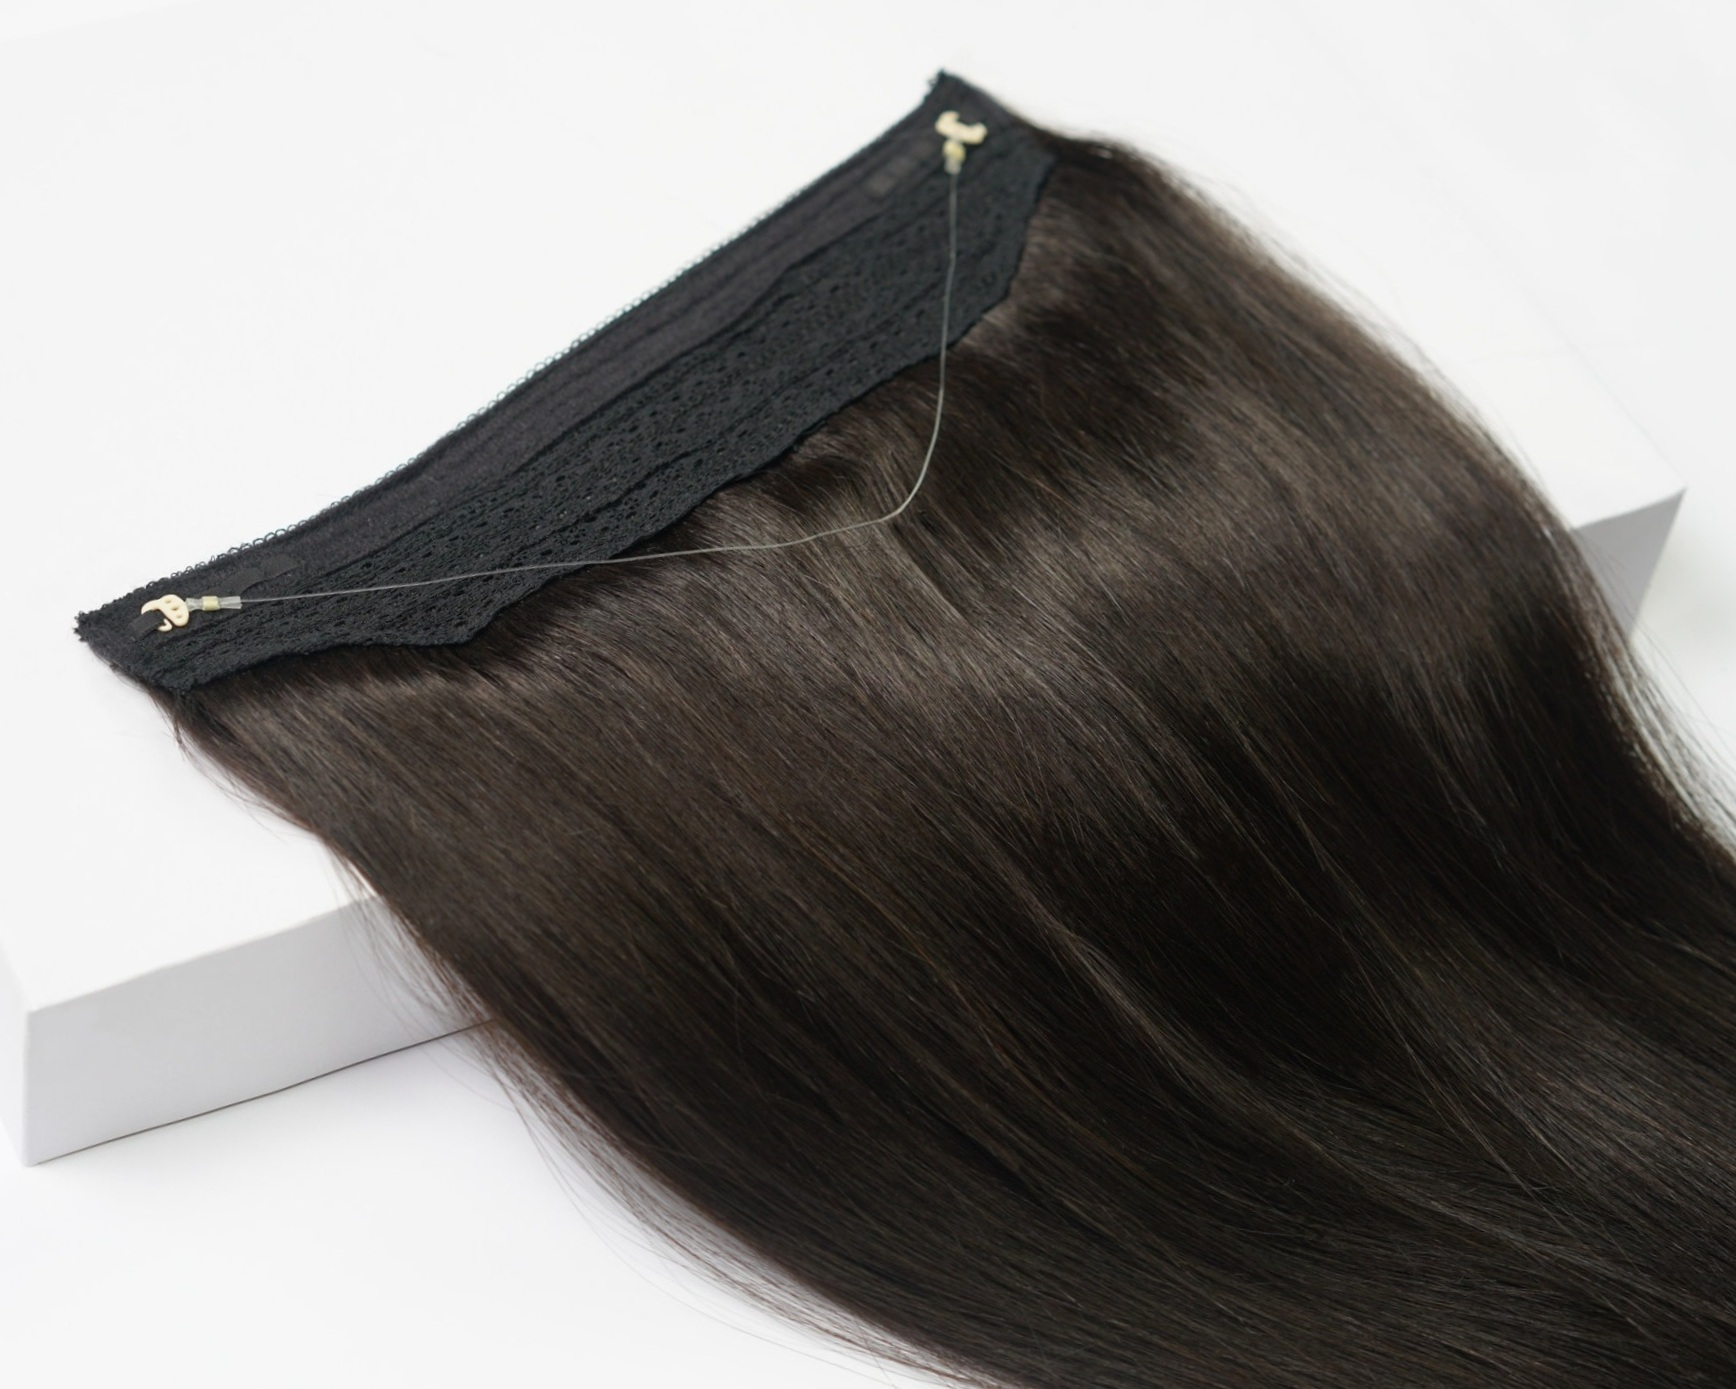 Joi Veil(Halo-Style Extensions) - Using a transparent string that will blend seamlessly with the layers of your own hair, this halo-style extension piece is a one-step wonder to length and volume.